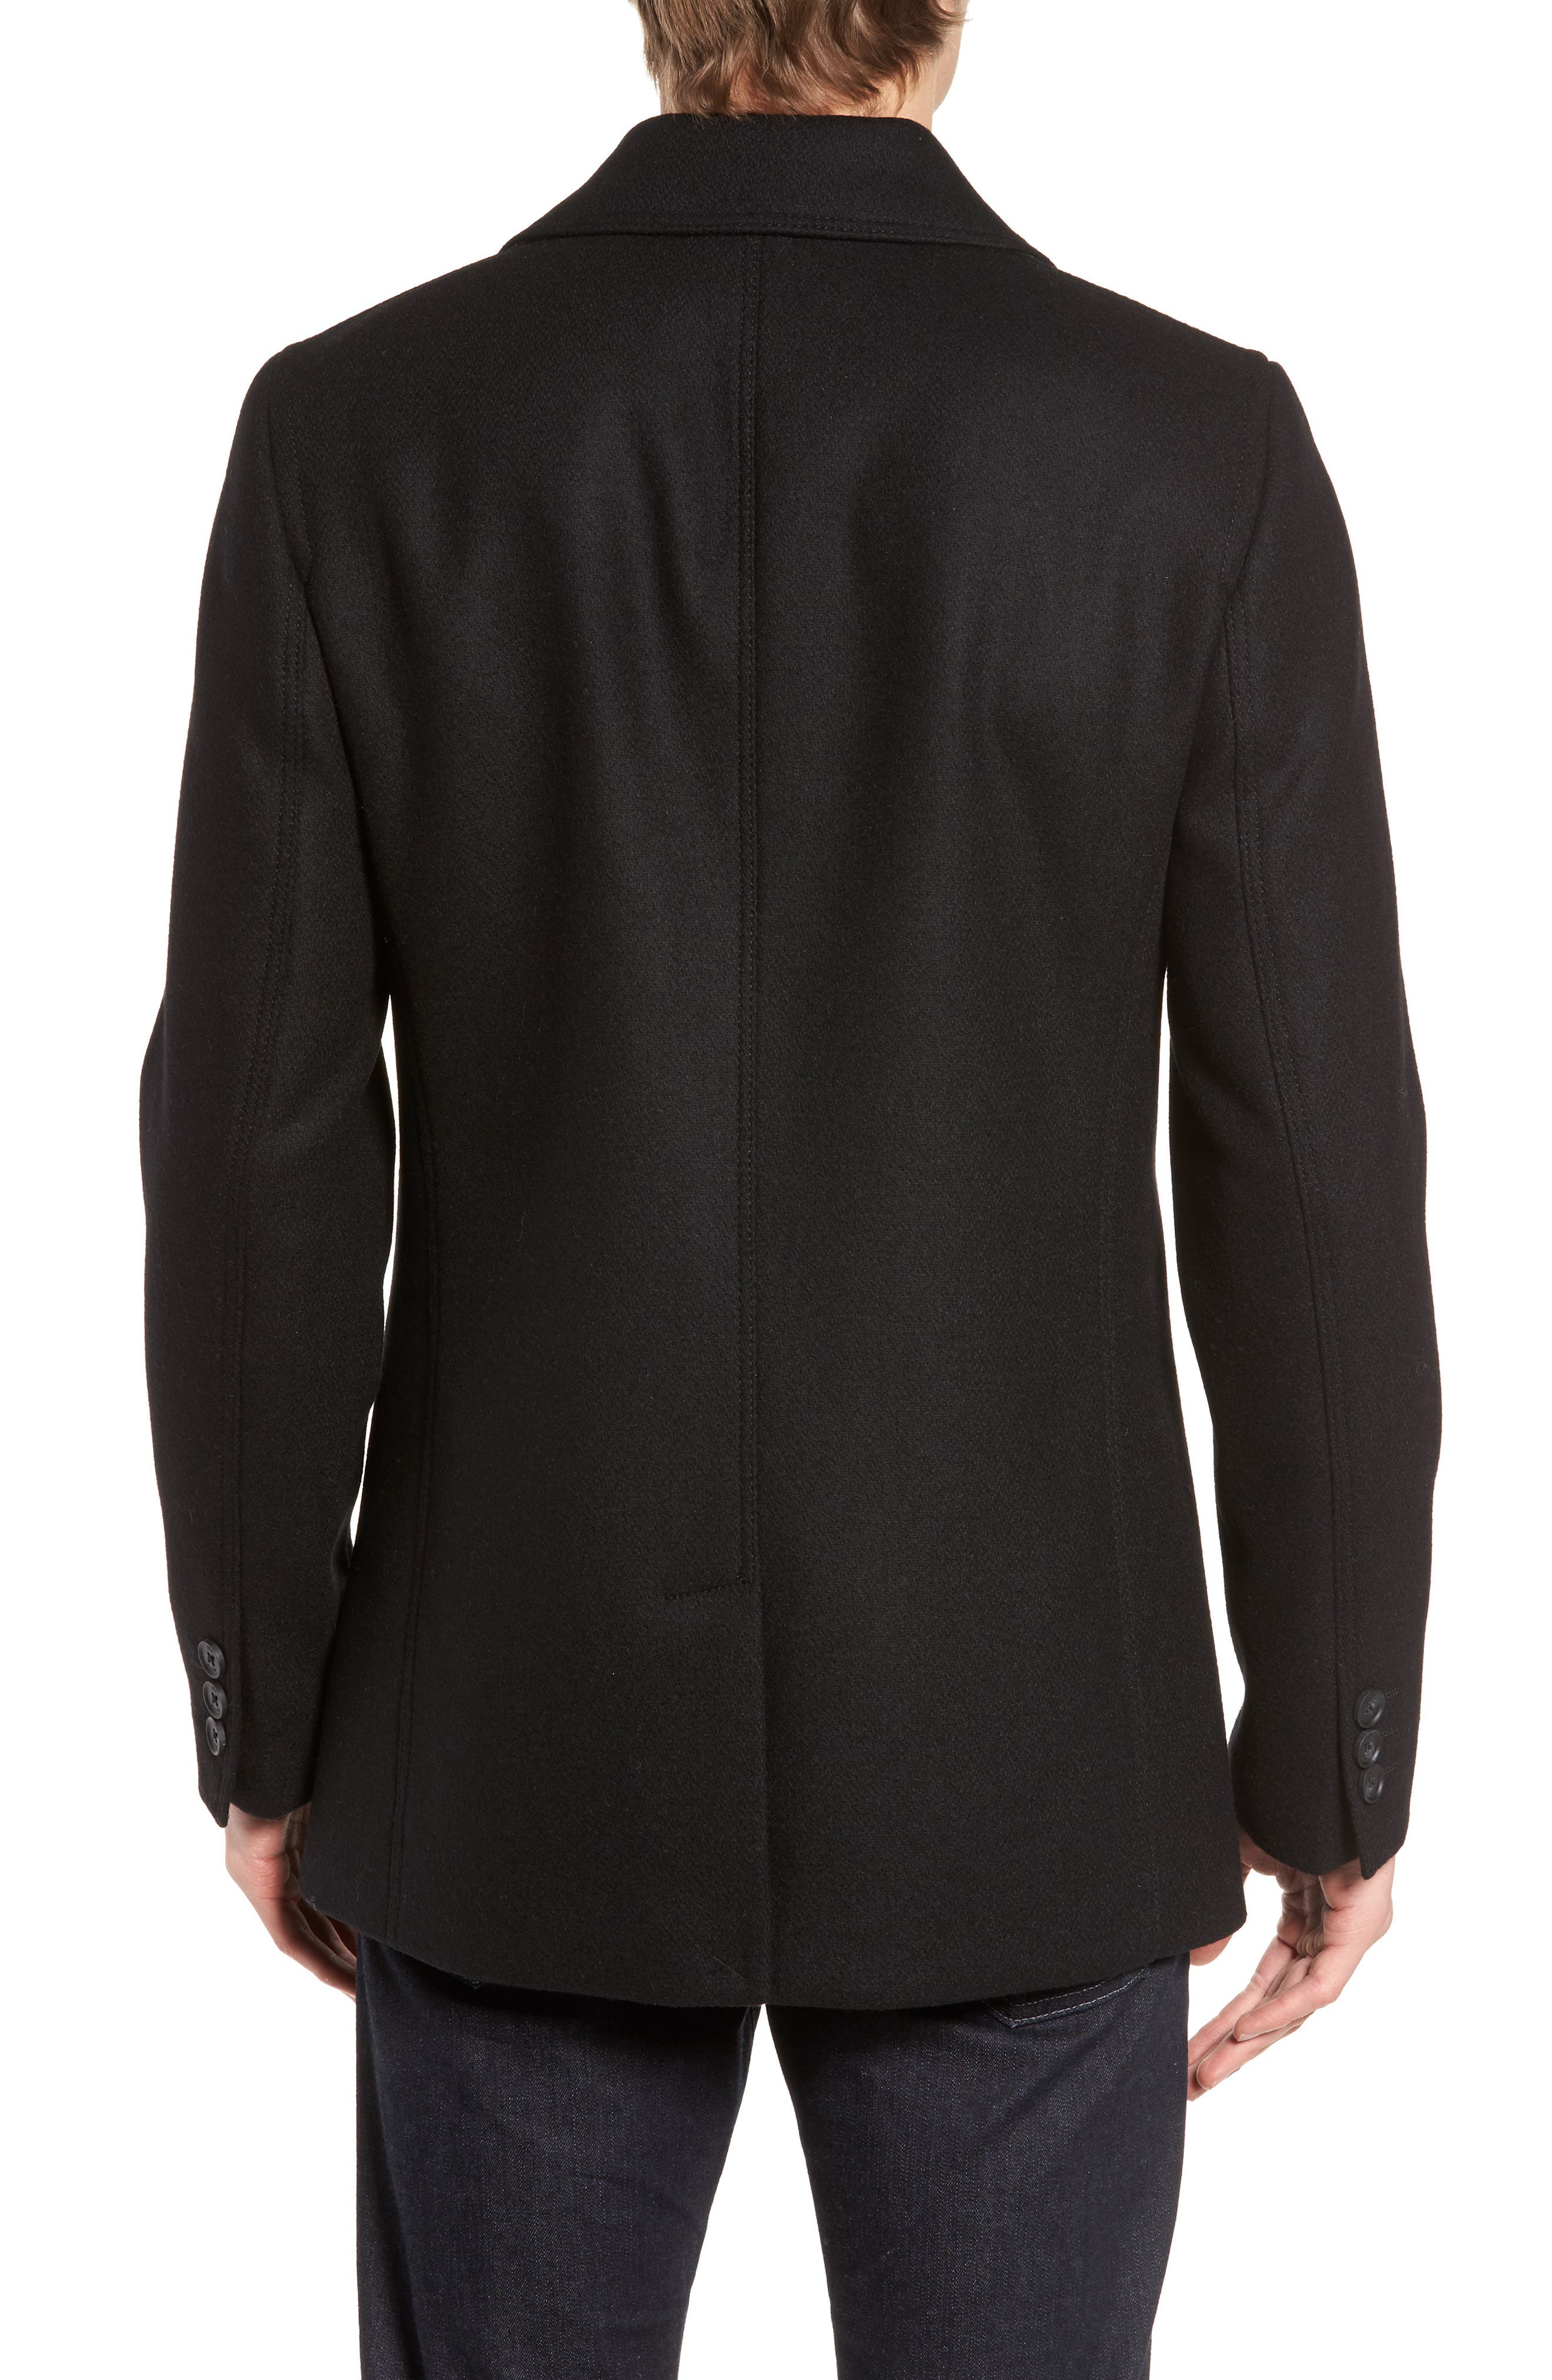 Zachary Trim Fit Double Breasted Peacoat,                             Alternate thumbnail 2, color,                             001